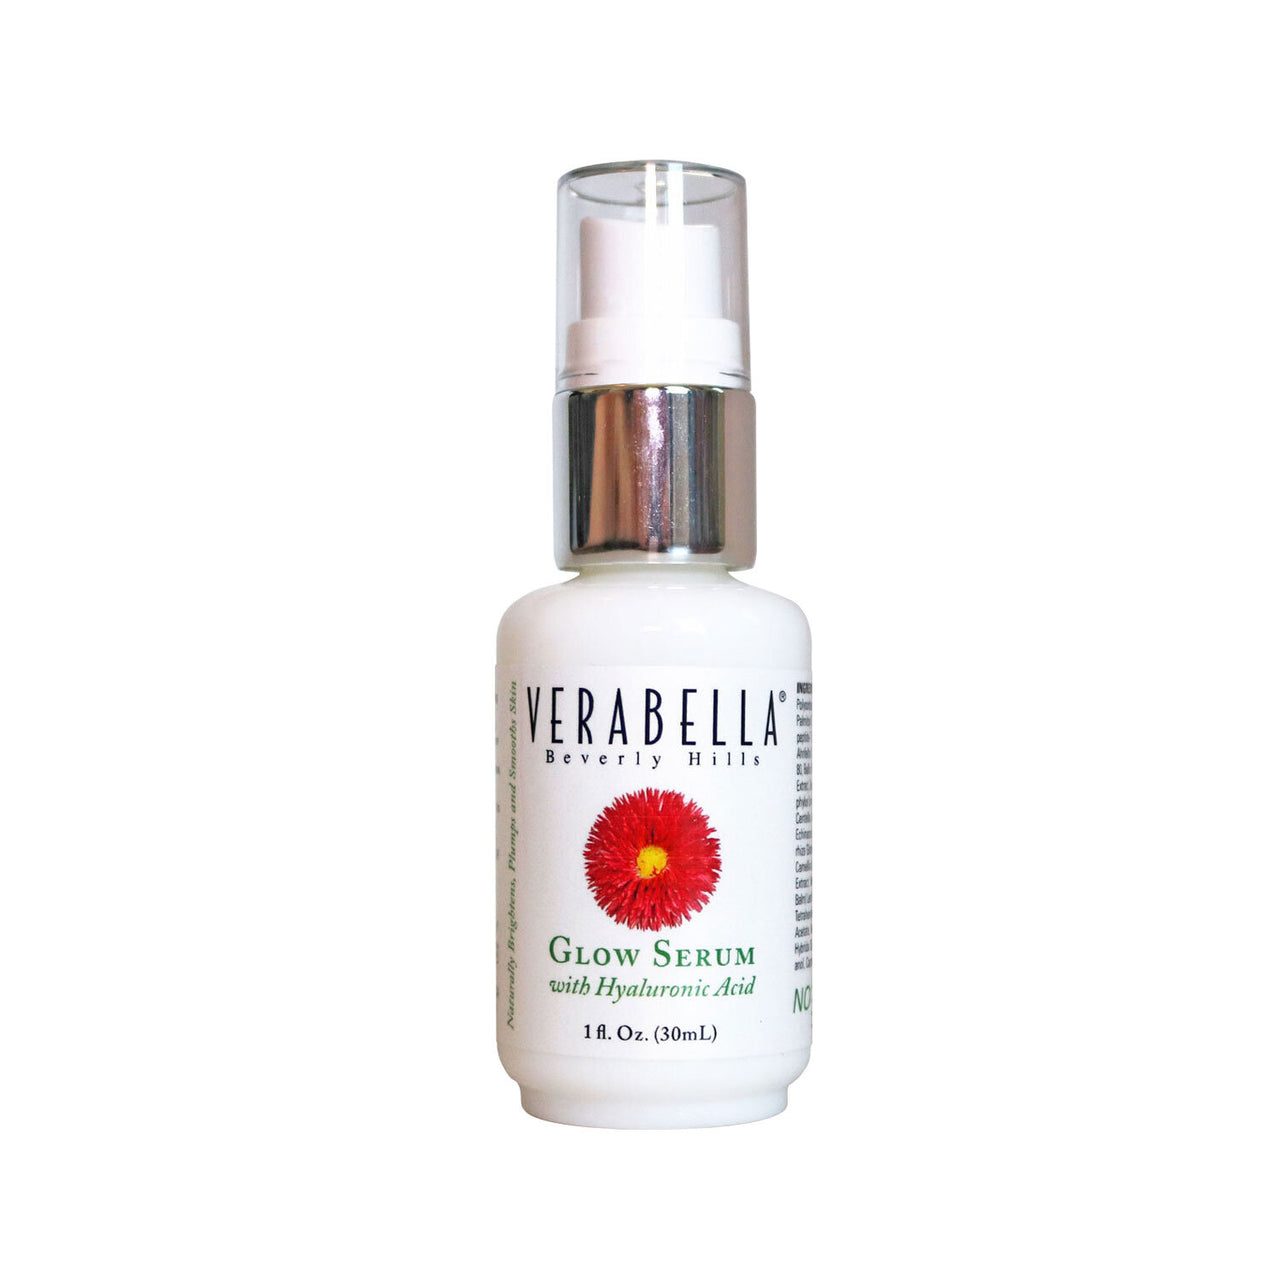 Verabella Glow Serum with Hyaluronic Acid